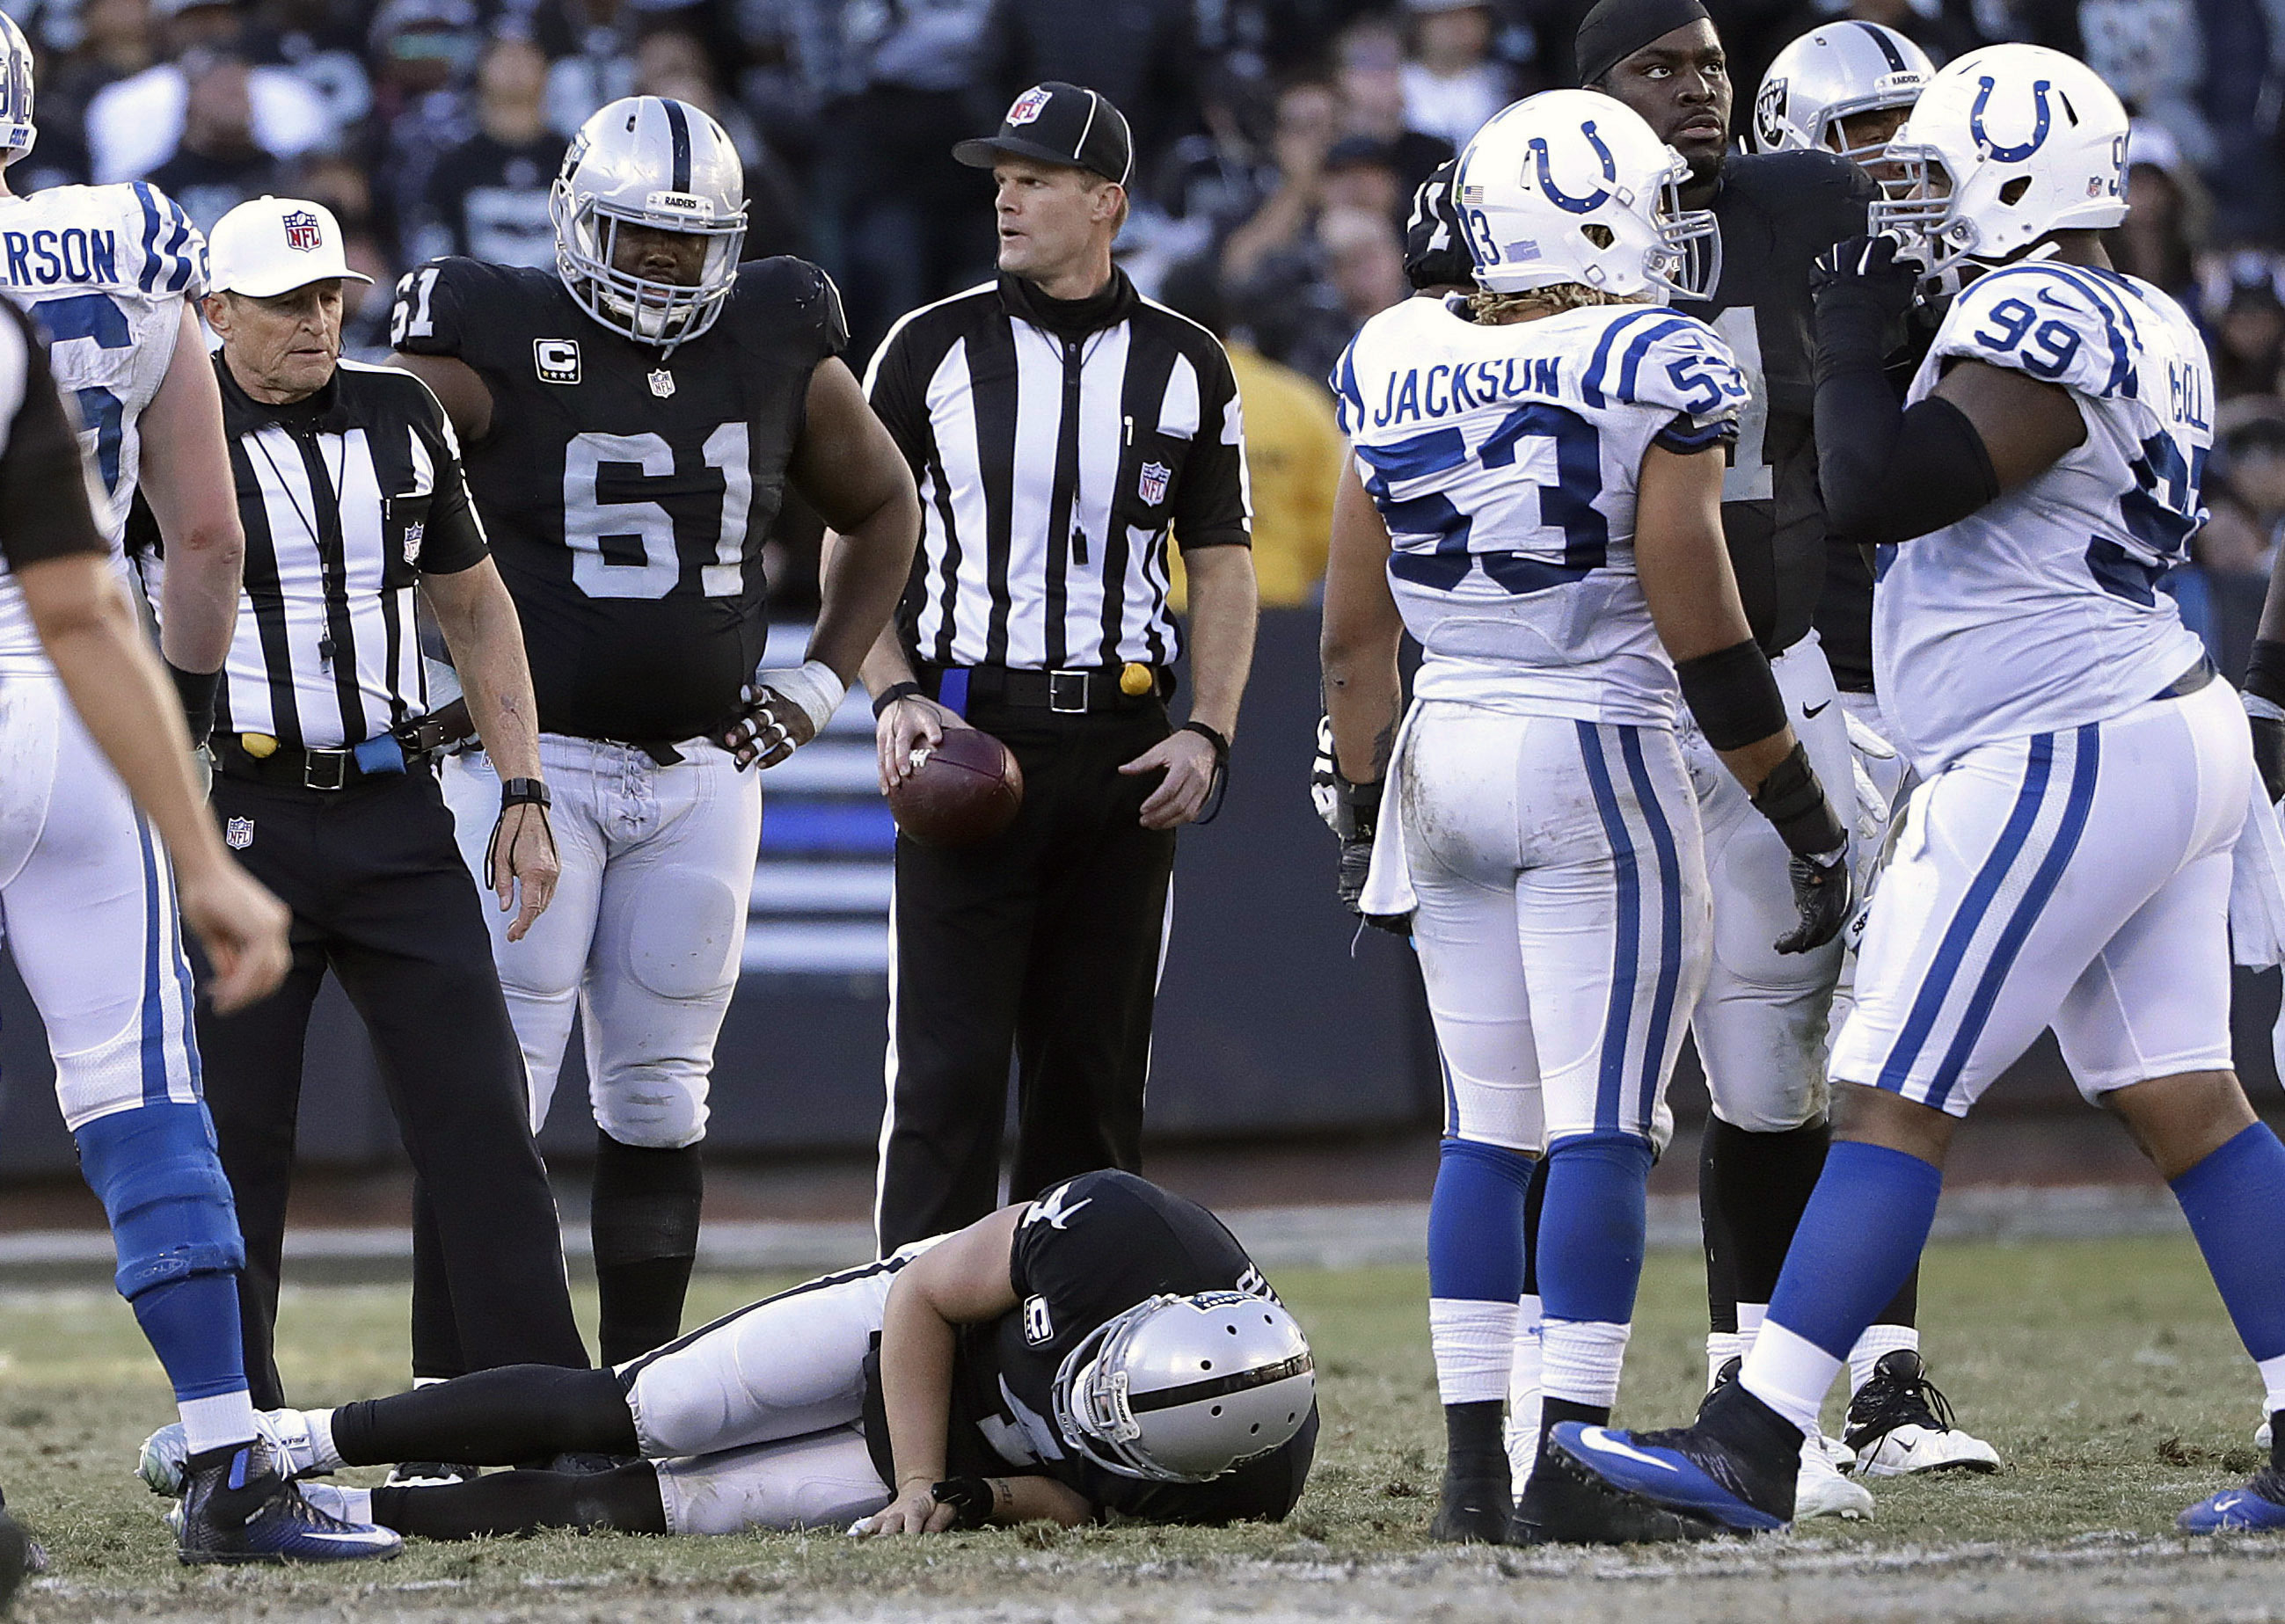 Oakland Raiders quarterback Derek Carr, bottom, remains on the field after being tackled by Indianapolis Colts inside linebacker Edwin Jackson during the second half of an NFL football game in Oakland, Calif., Saturday, Dec. 24, 2016. (AP Photo/Marcio Jos